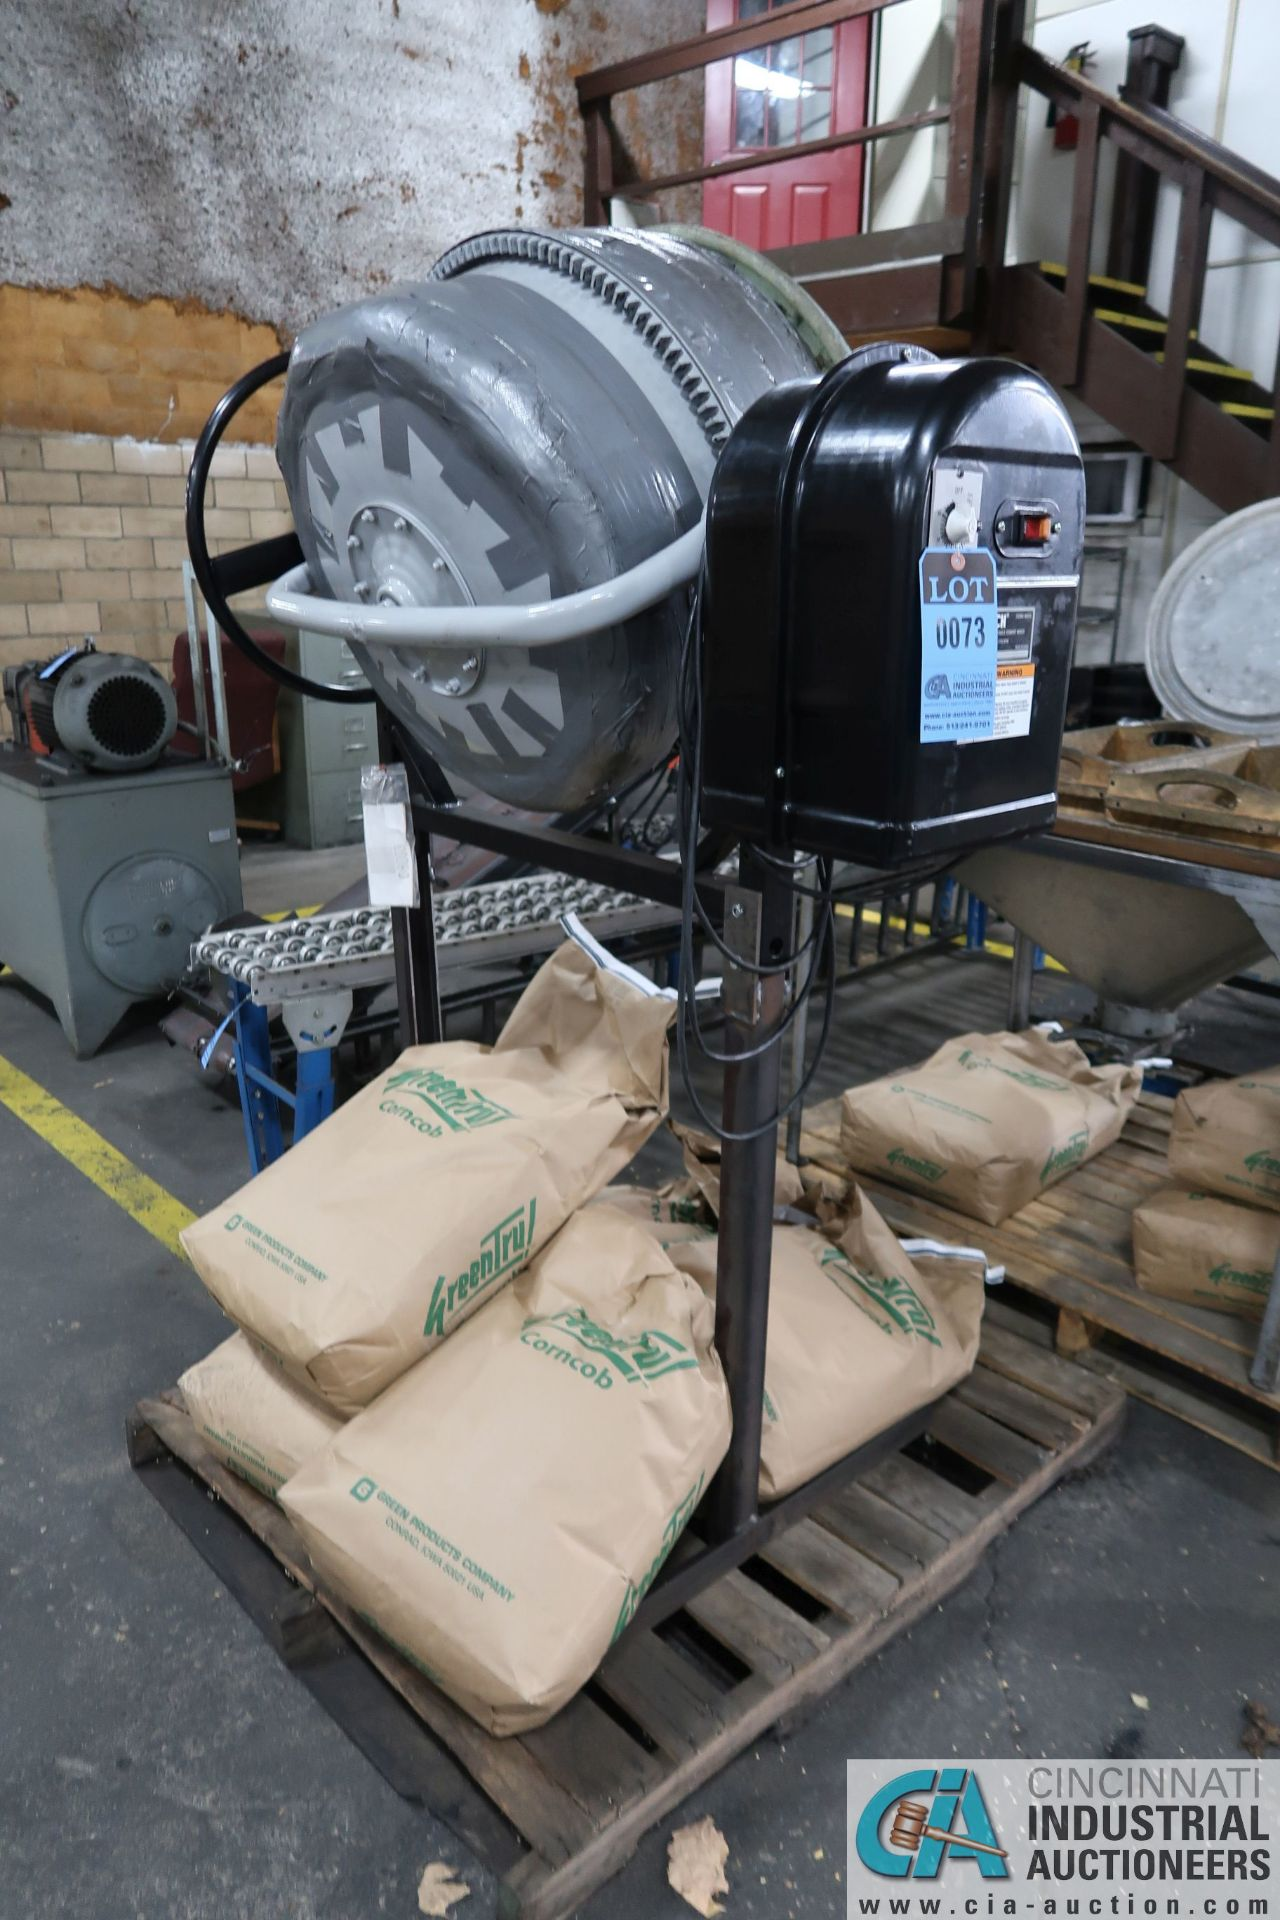 PORTABLE ELECTRIC CEMENT MIXERS CONVERTED TO CORN COB MEDIA FINISHING MACHINE WITH SIFTING TABLE AND - Image 2 of 6